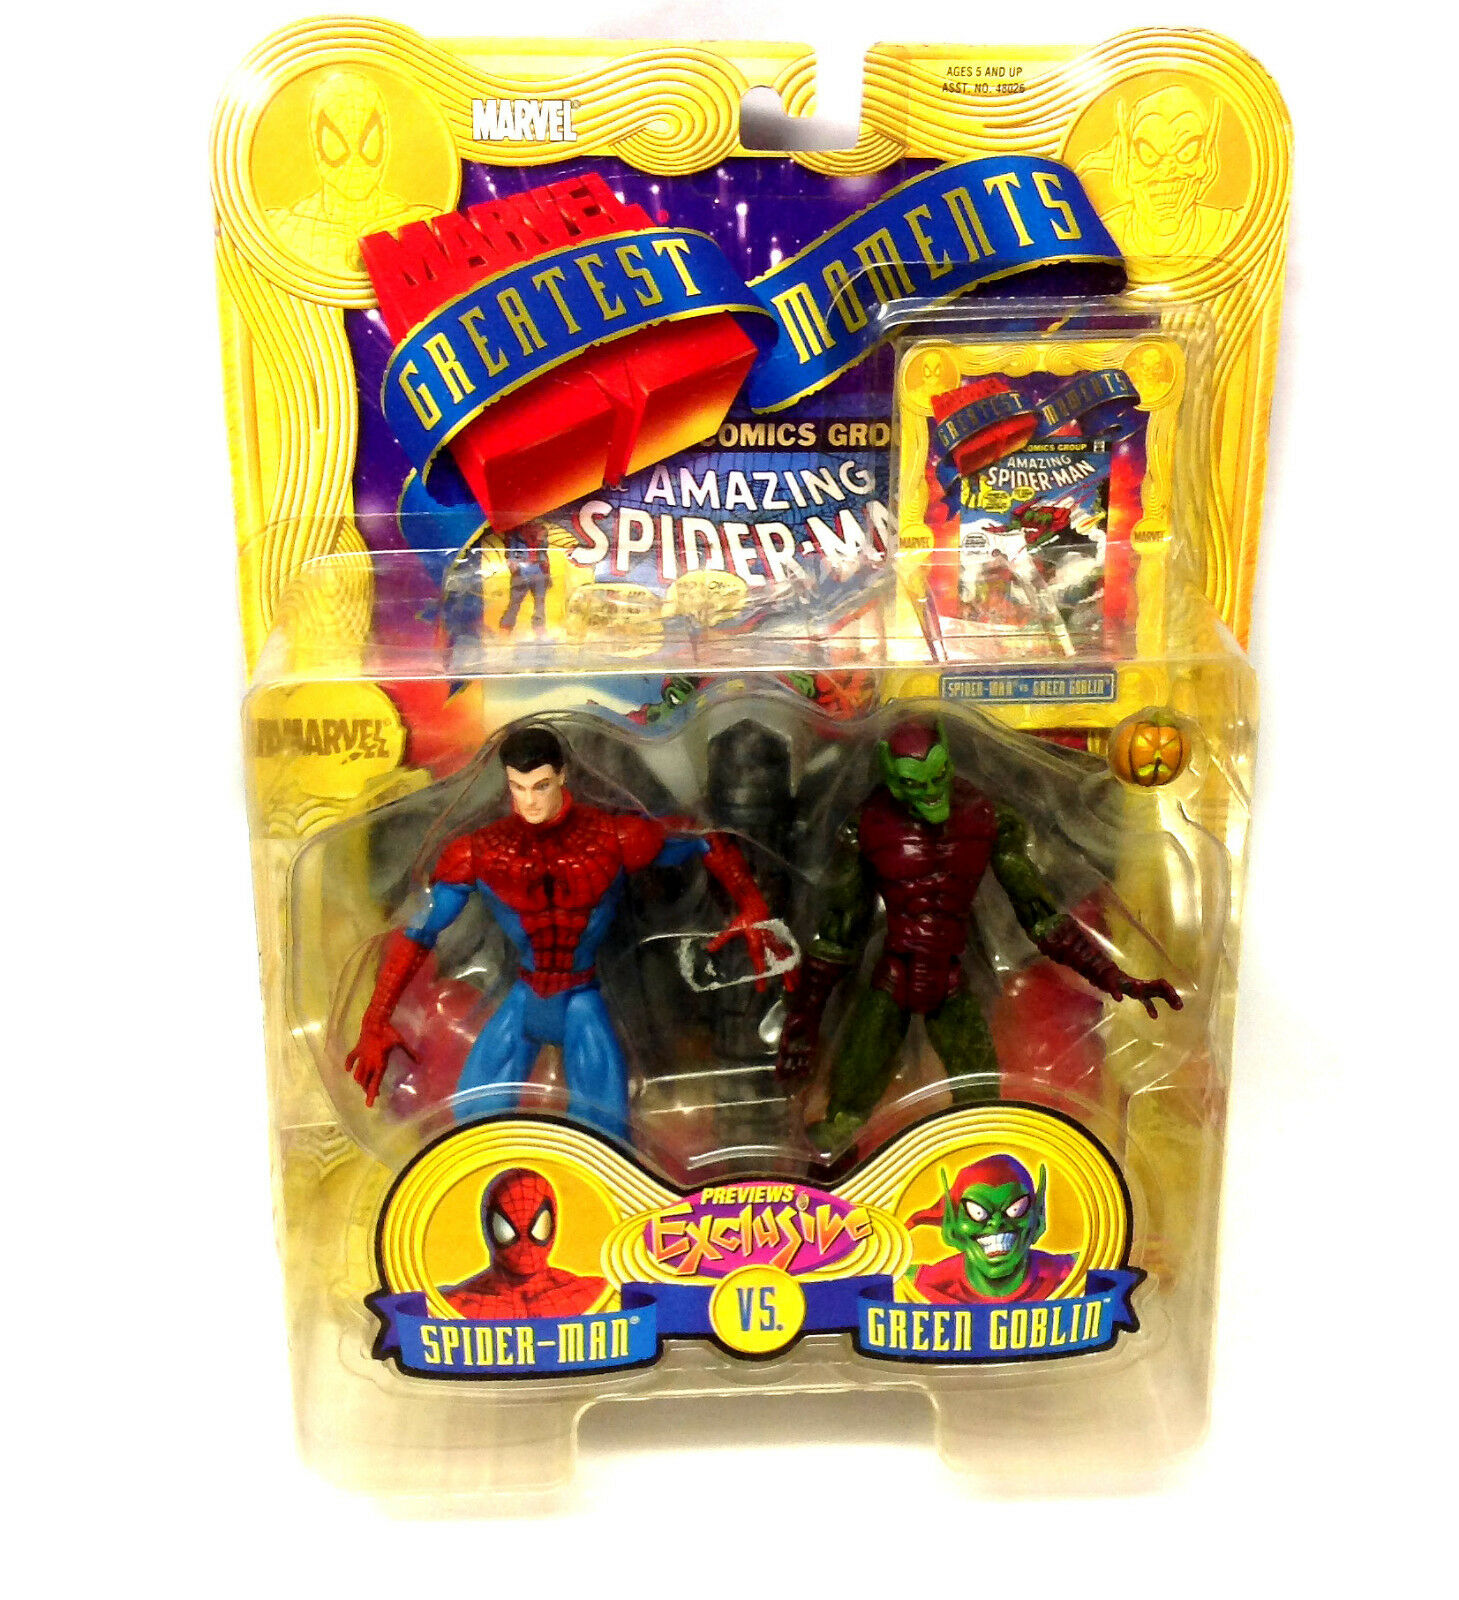 Vintage 90s Marvel Comics Spiderman & Grün Goblin previews exclusive figure set